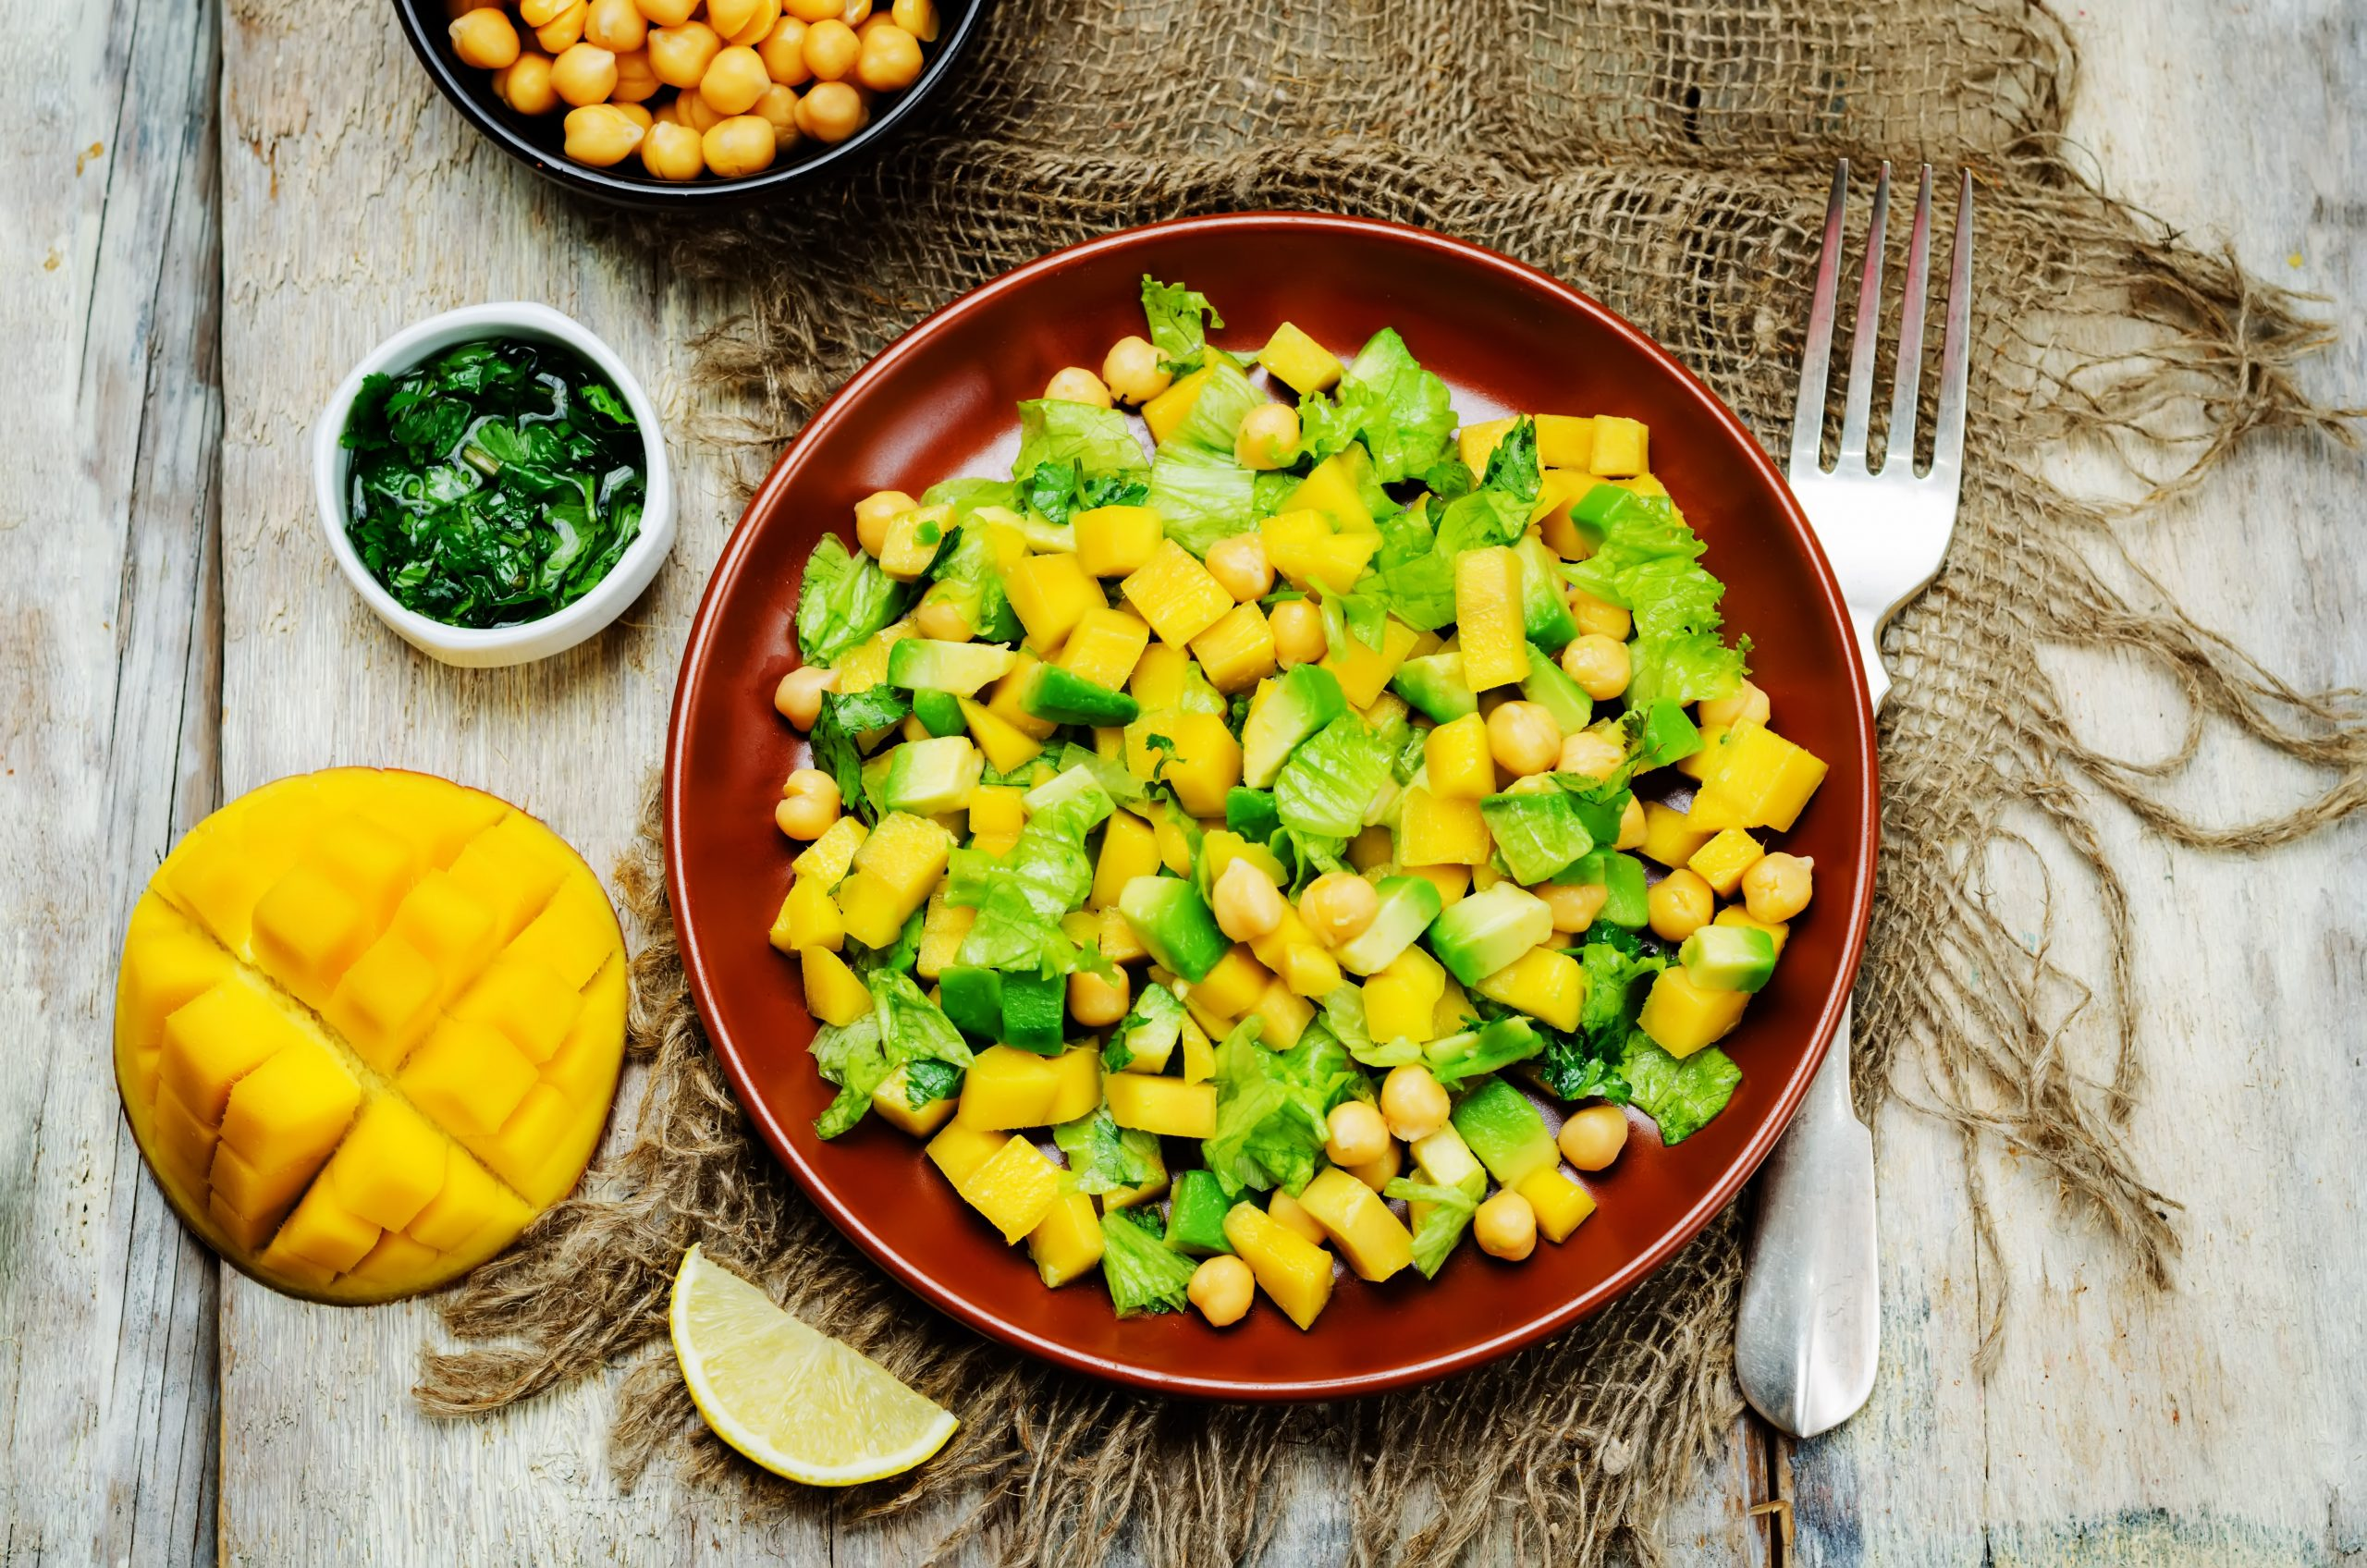 Flavorful Chickpea, Avocado, and Mango Salad